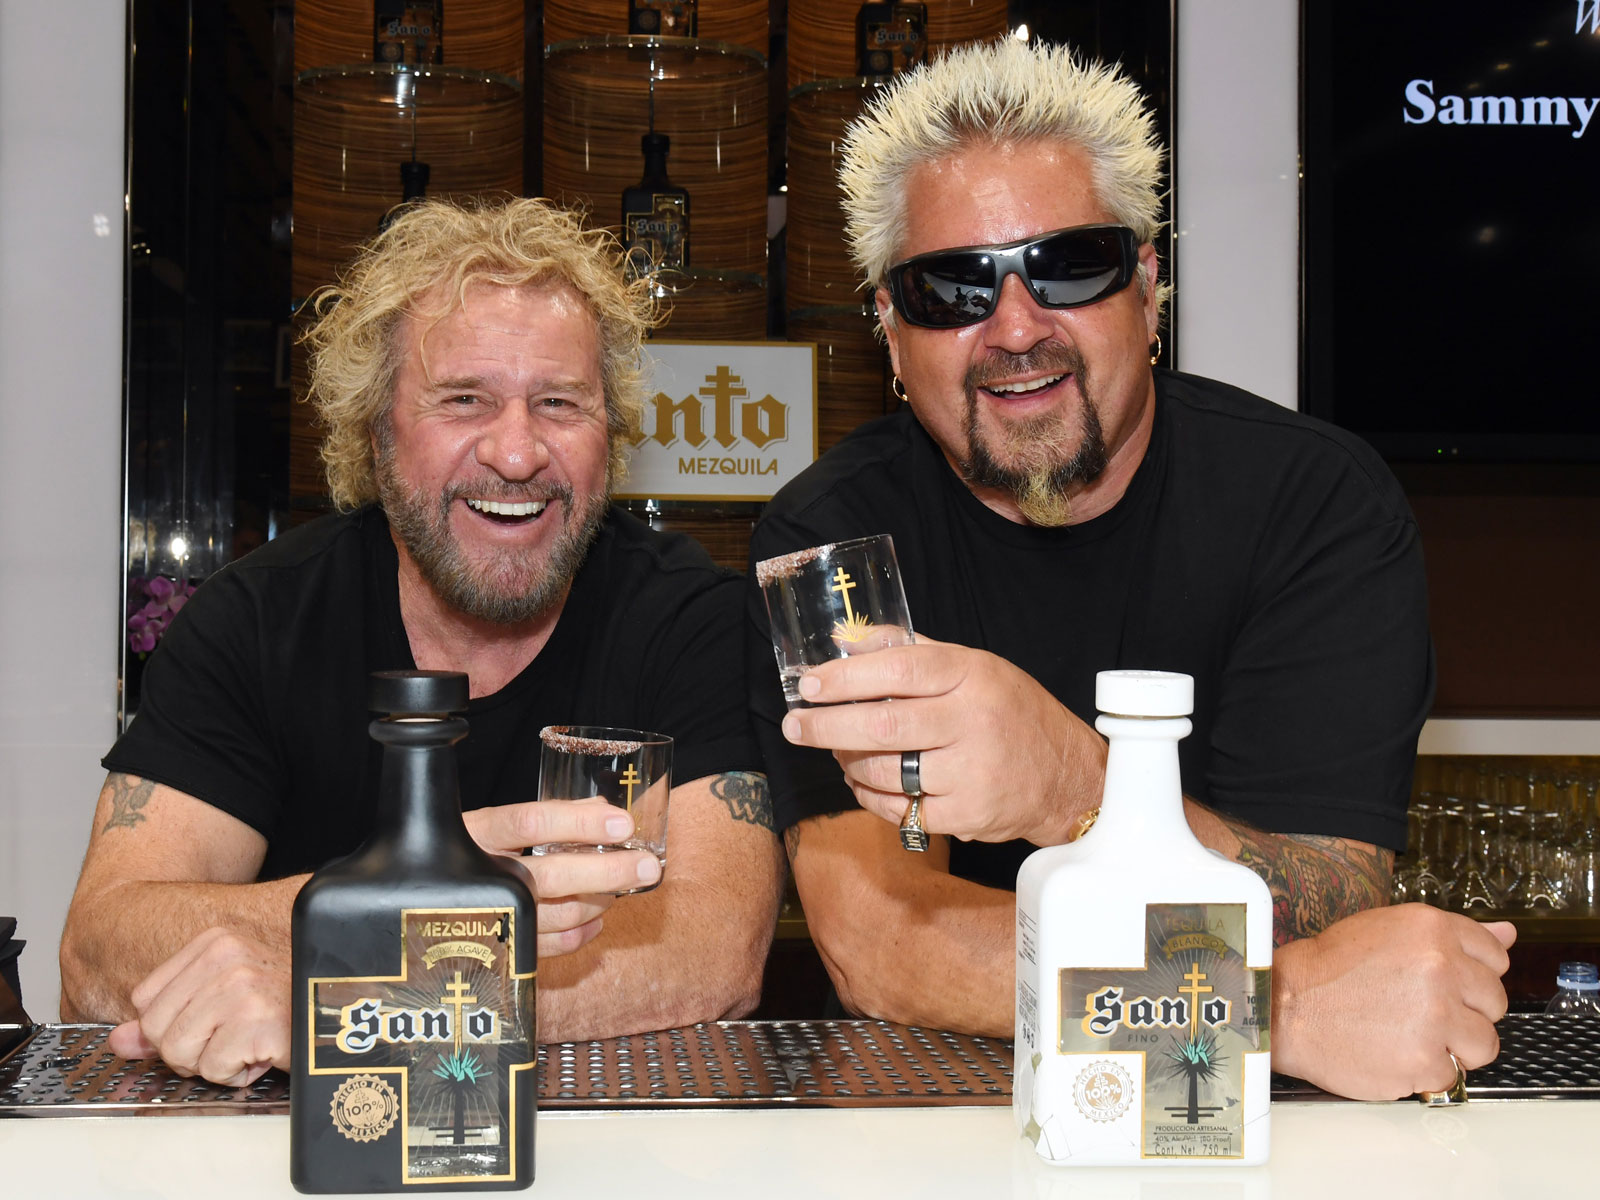 sammy-hagar-guy-fieri-cabo-wabo-FT-BLOG0419.jpg